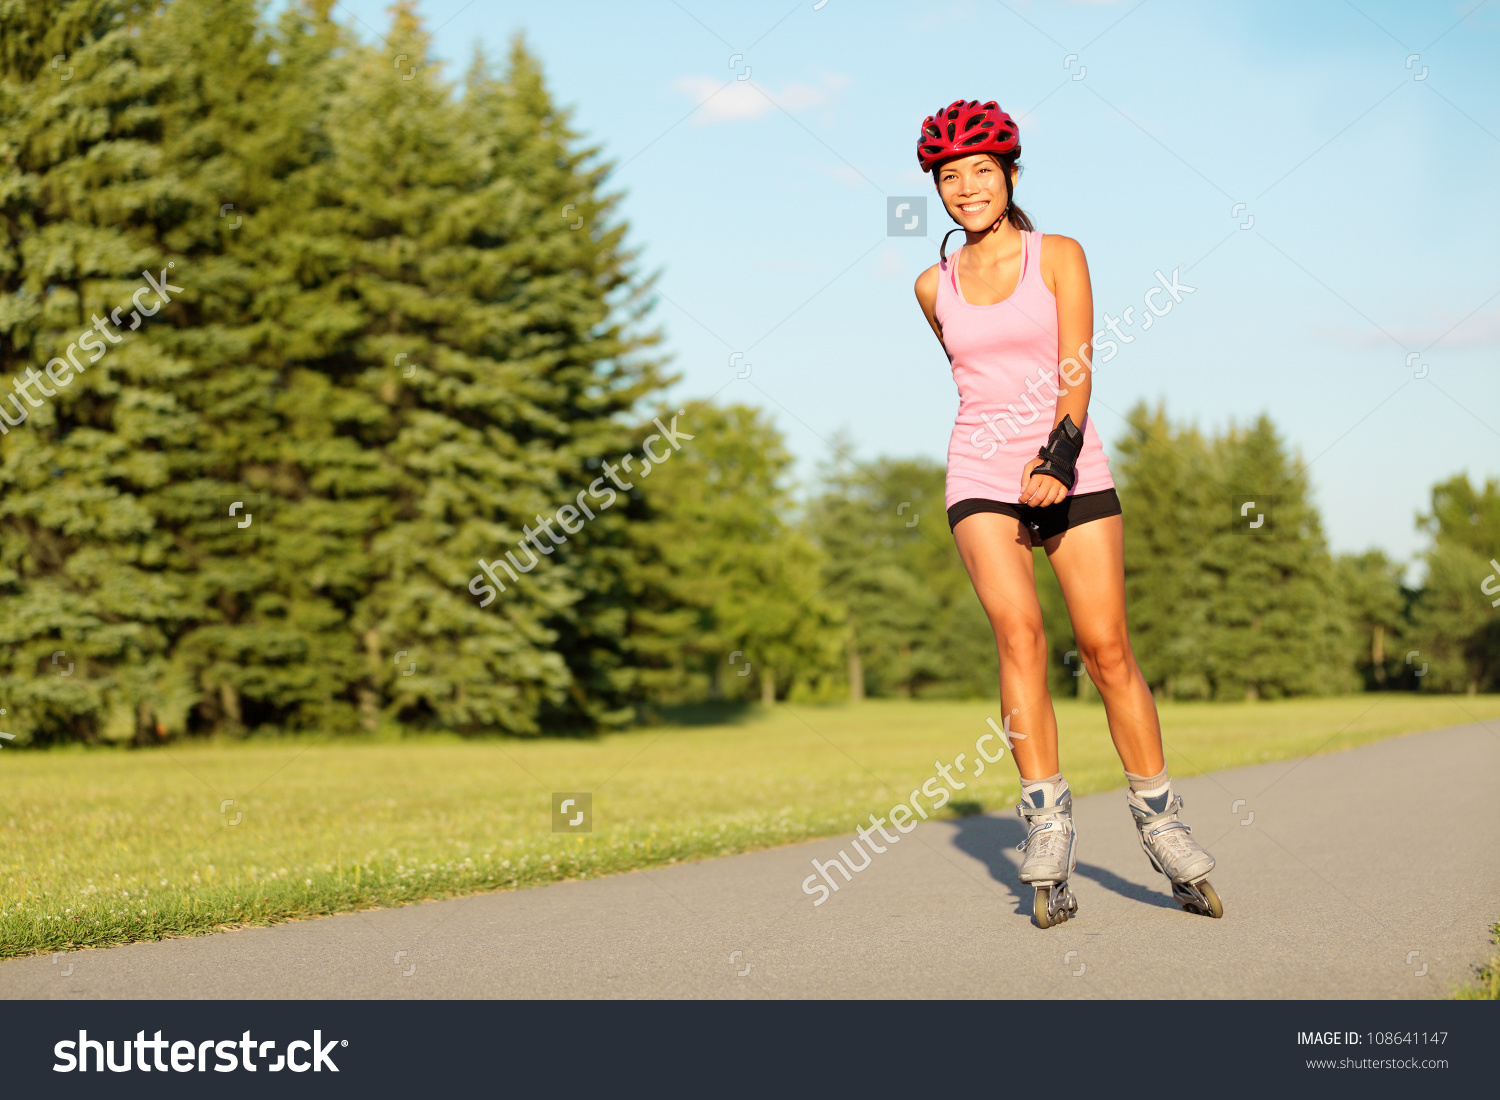 girl rollerblading clipart with no splash #16